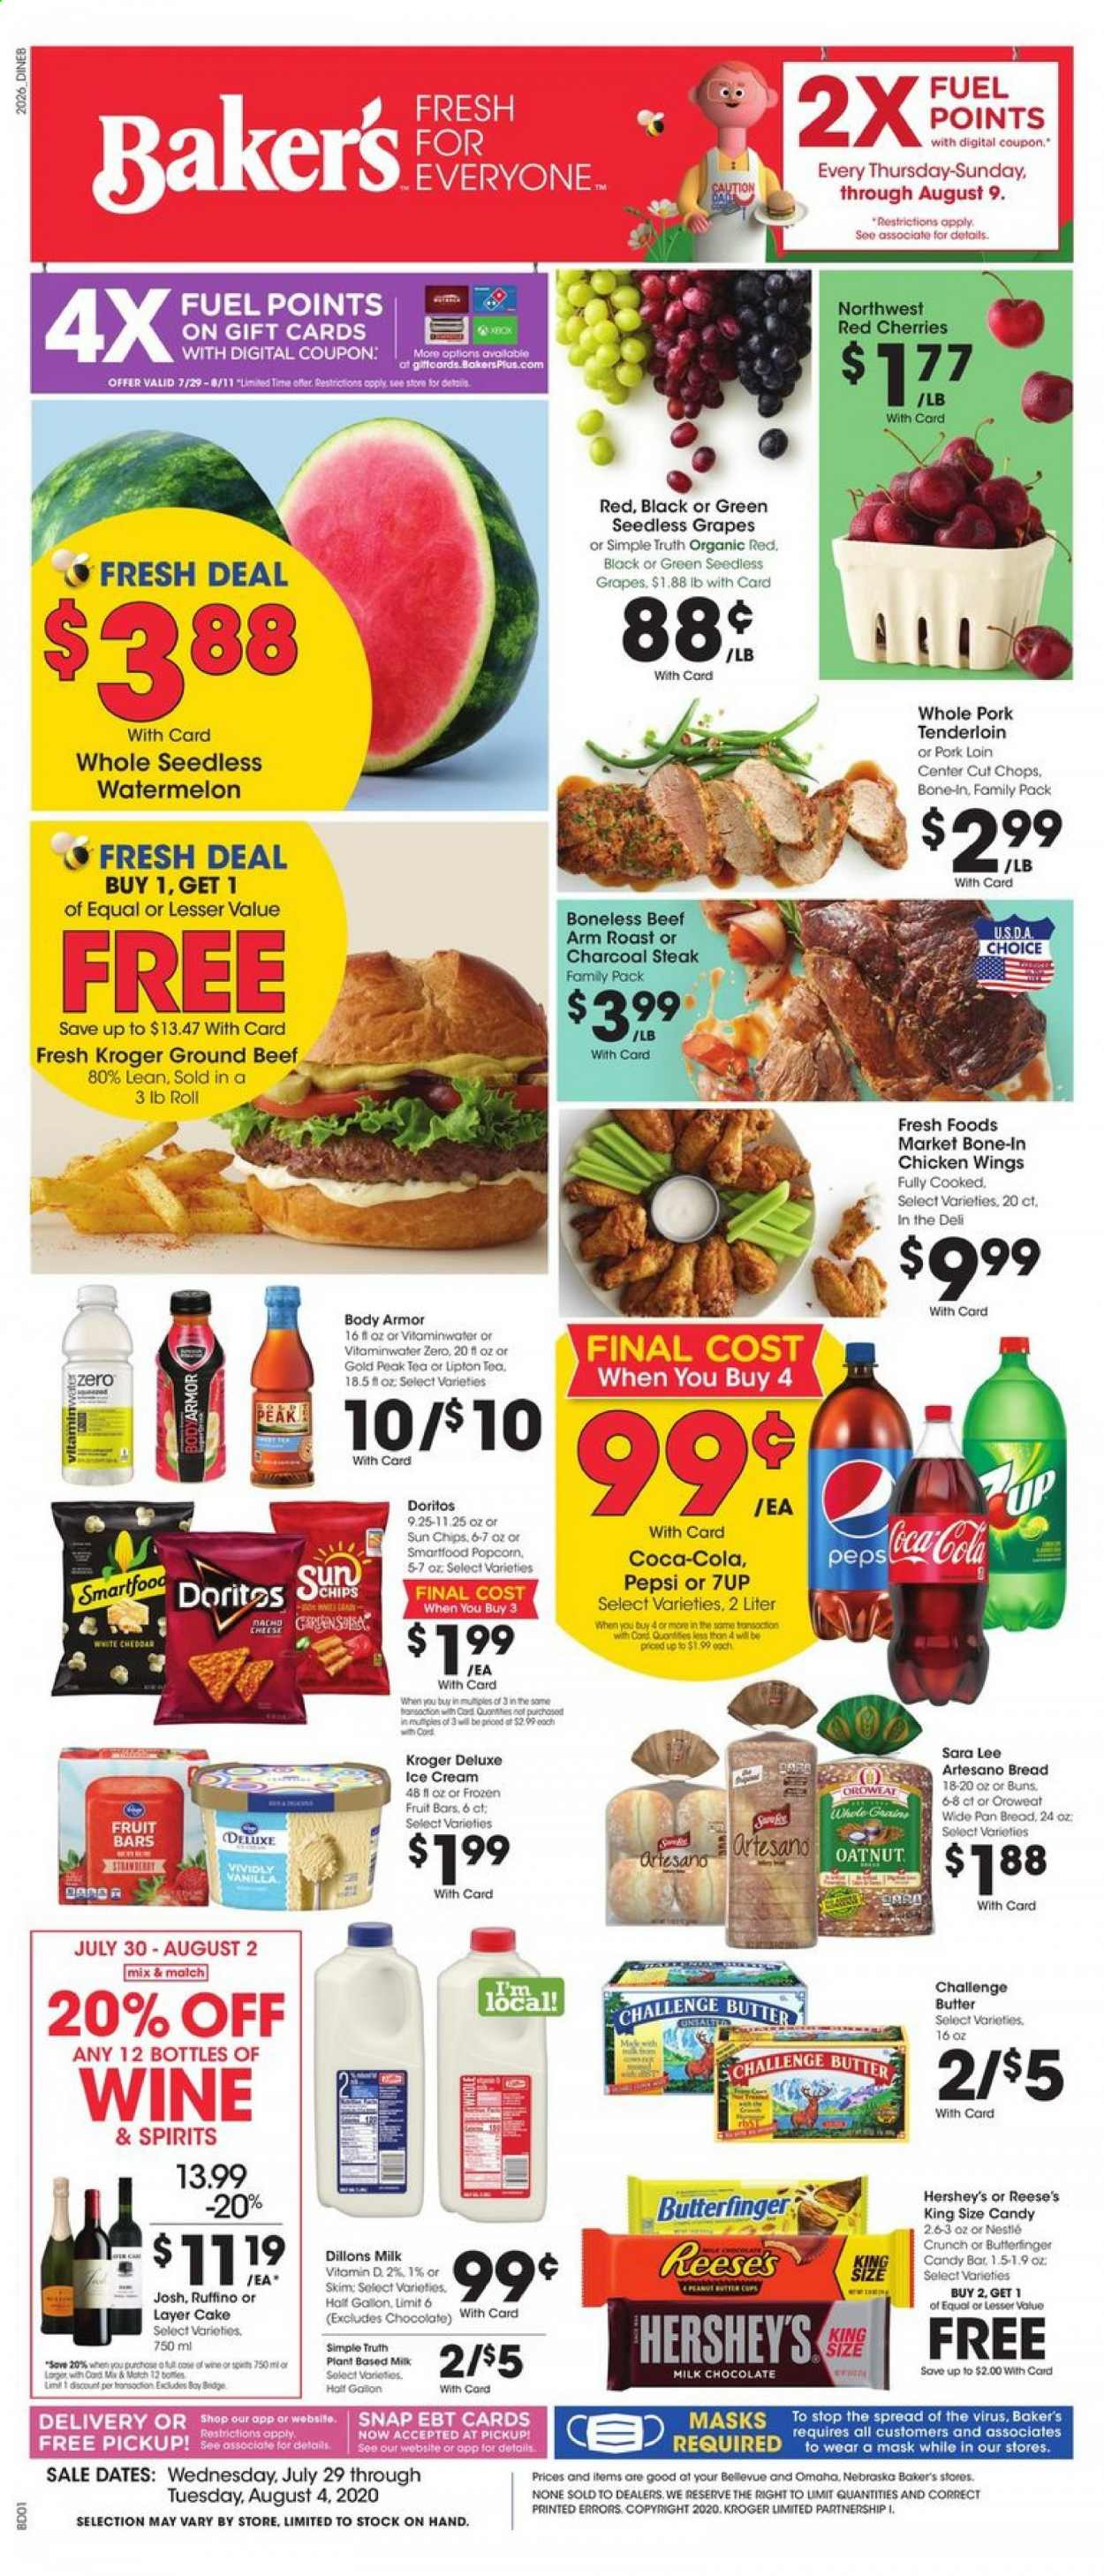 Baker's Flyer - 07.29.2020 - 08.04.2020 - Sales products - beef meat, bread, butter, coca-cola, dates, doritos, fuel, grapes, ground beef, mask, milk chocolate, nestlé, seedless grapes, tea, watermelon, ice cream, pork loin, pork meat, pork tenderloin, charcoal, cherries, chicken, pan, pepsi, organic, chicken wings, chips, chocolate, steak, tenderloin, cheese, cake, candy, body armor, reese, lee, lipton, wine, fruit, wings, roast, family pack. Page 1.